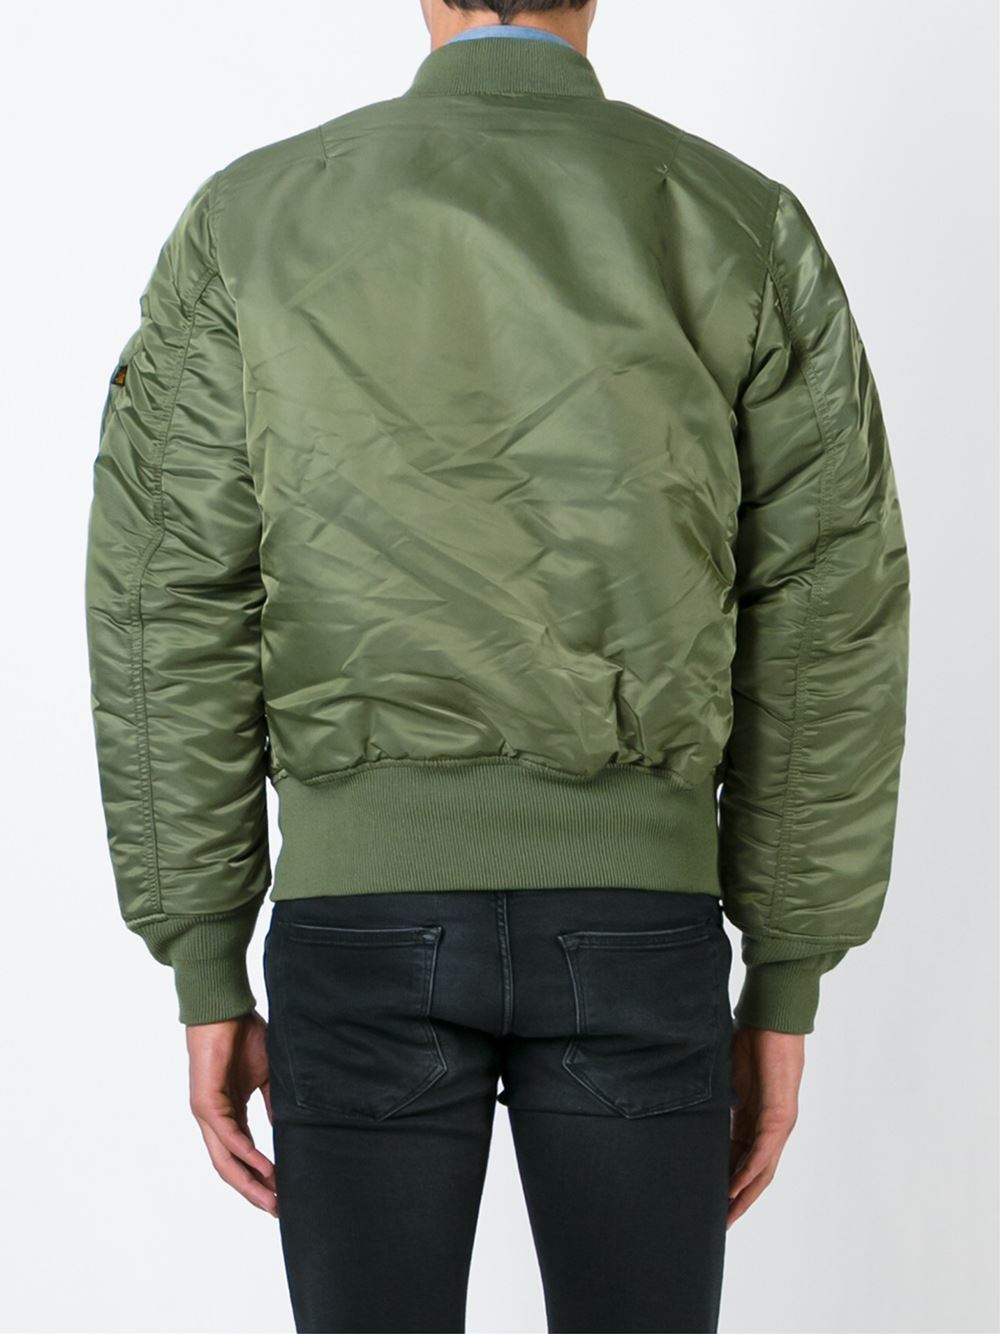 alpha industries classic bomber jacket in green for men lyst. Black Bedroom Furniture Sets. Home Design Ideas